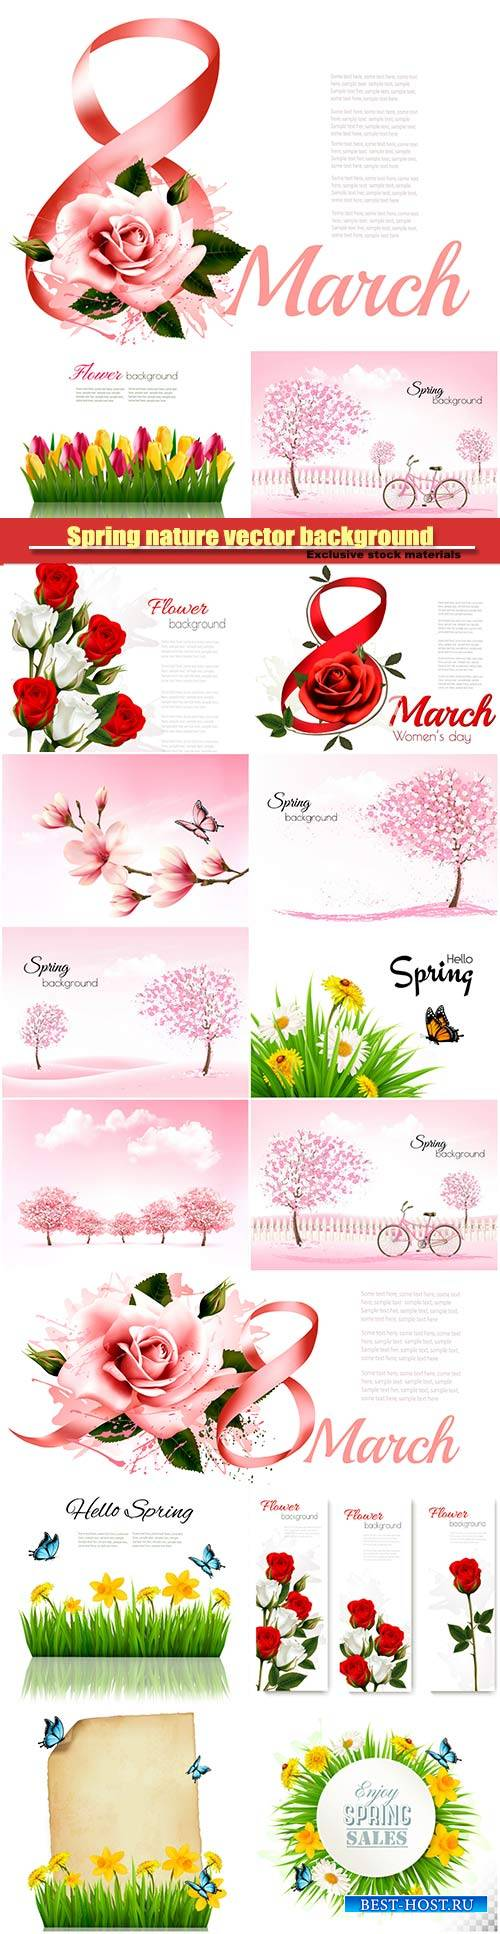 8th March illustration with rose, women's day, spring nature vector background